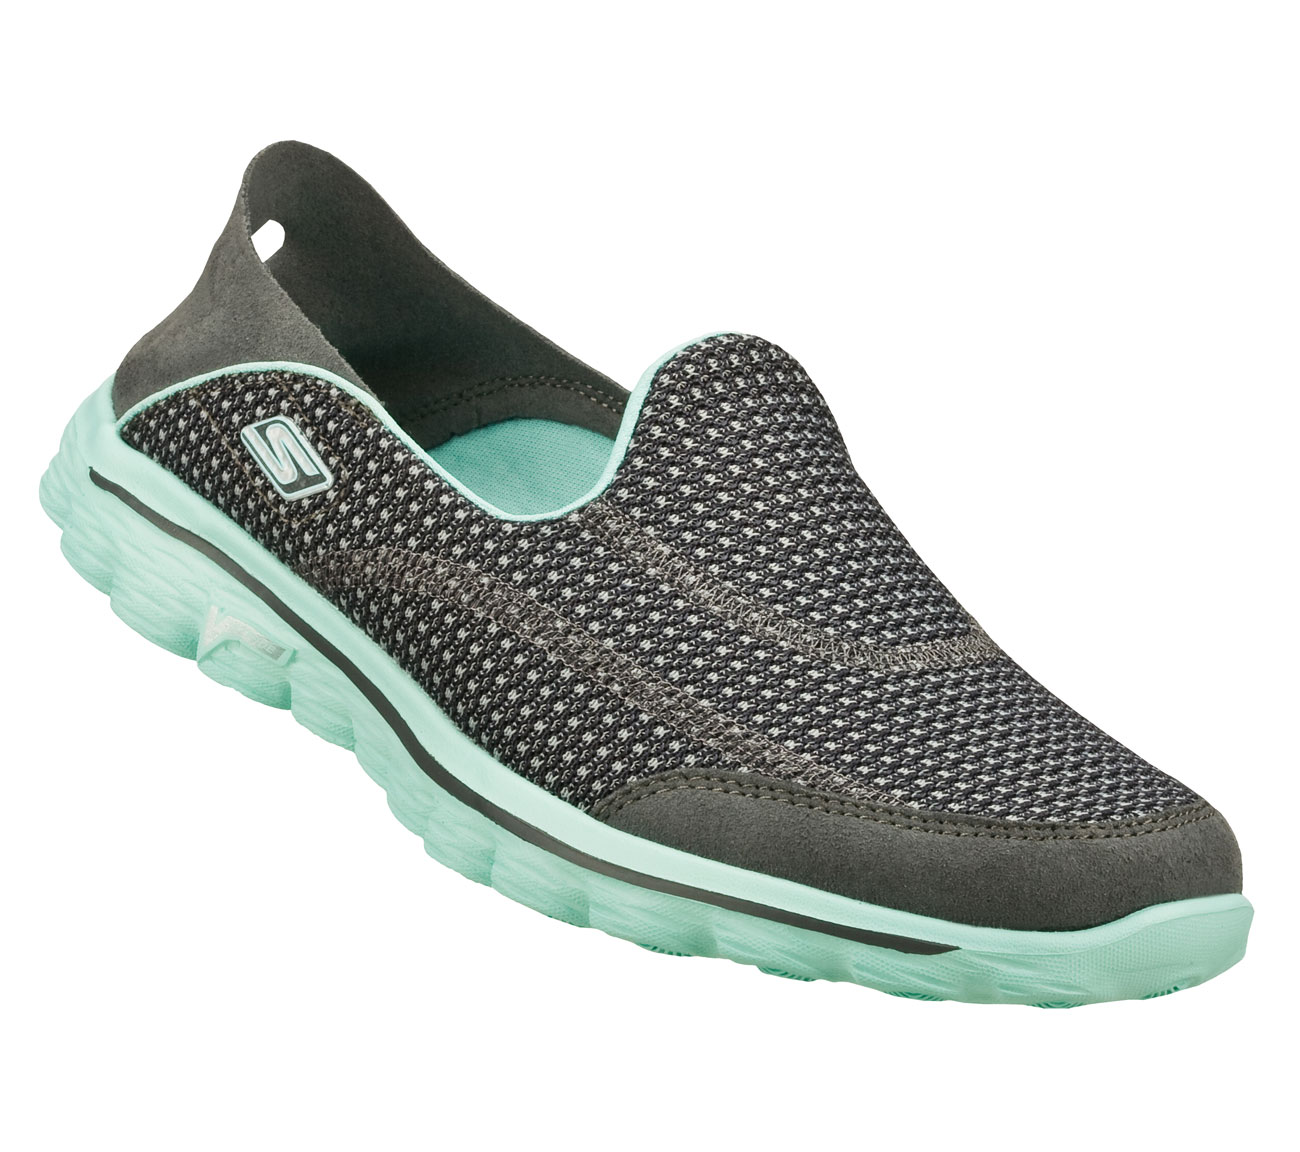 skechers go walk shoes review sale   OFF51% Discounted c2482e324